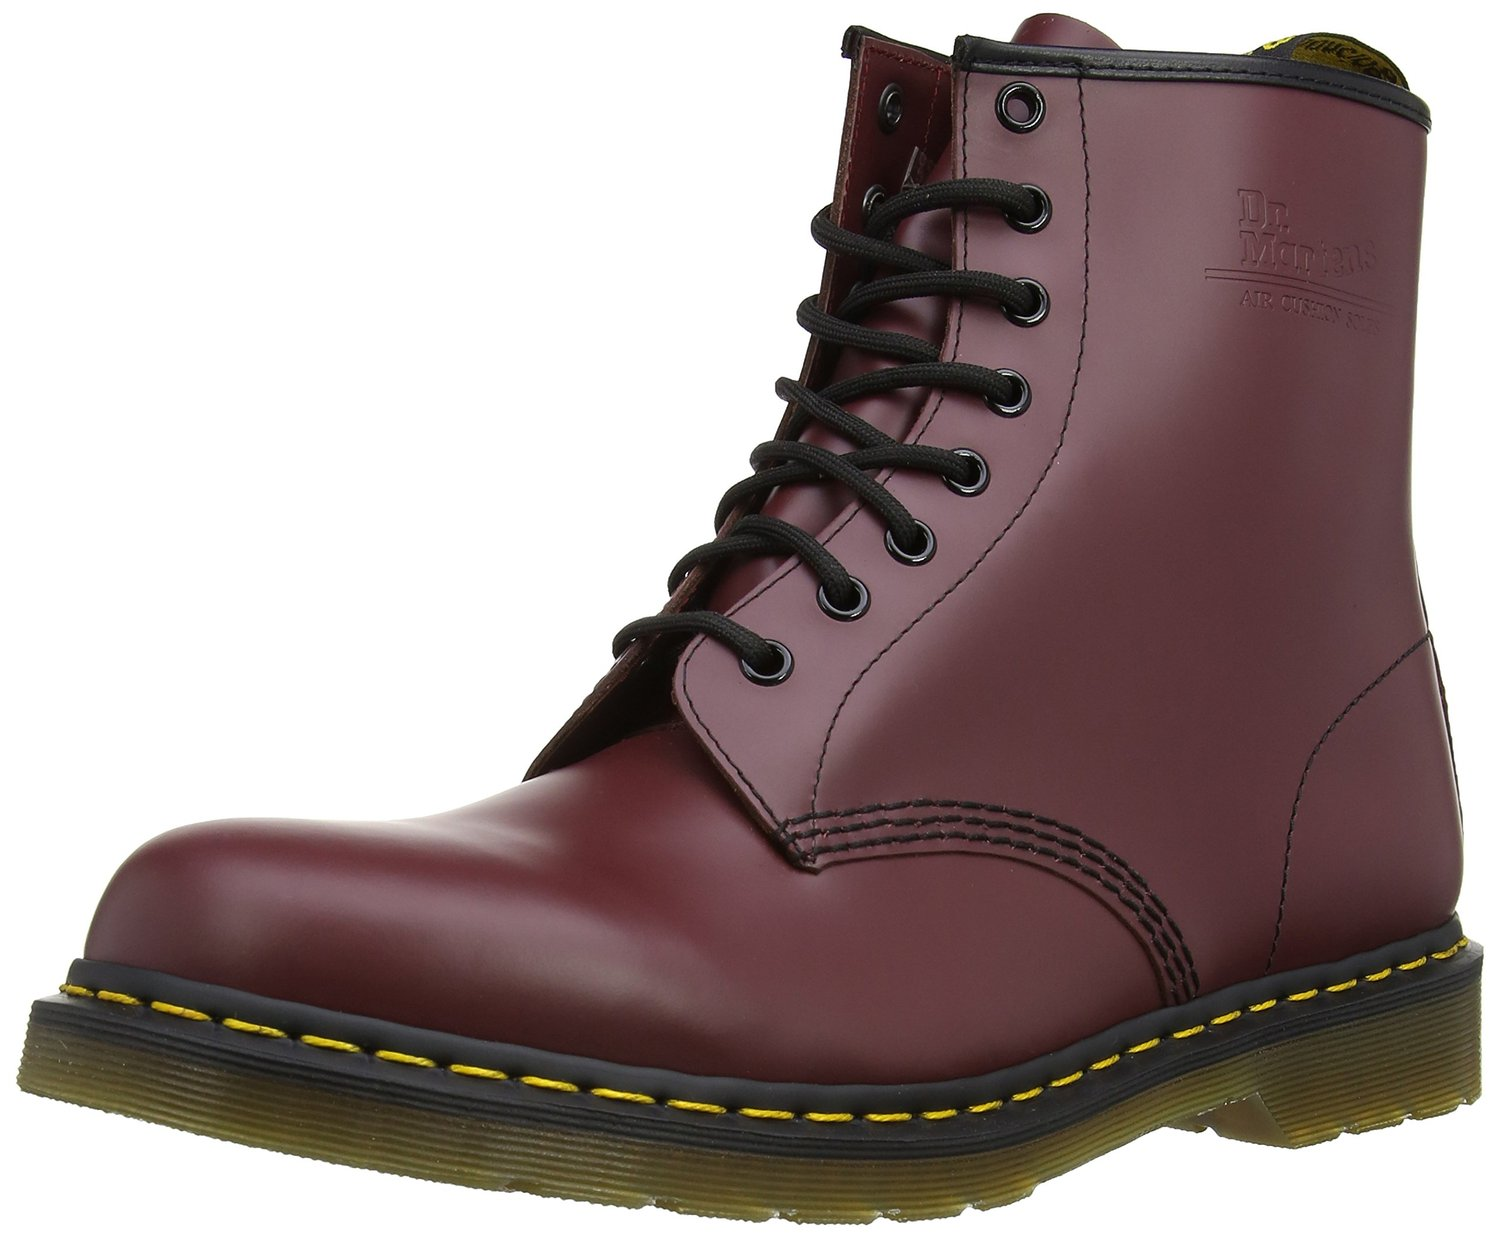 Dr. Martens 1460 Classic Boot Mens by Dr. Martens